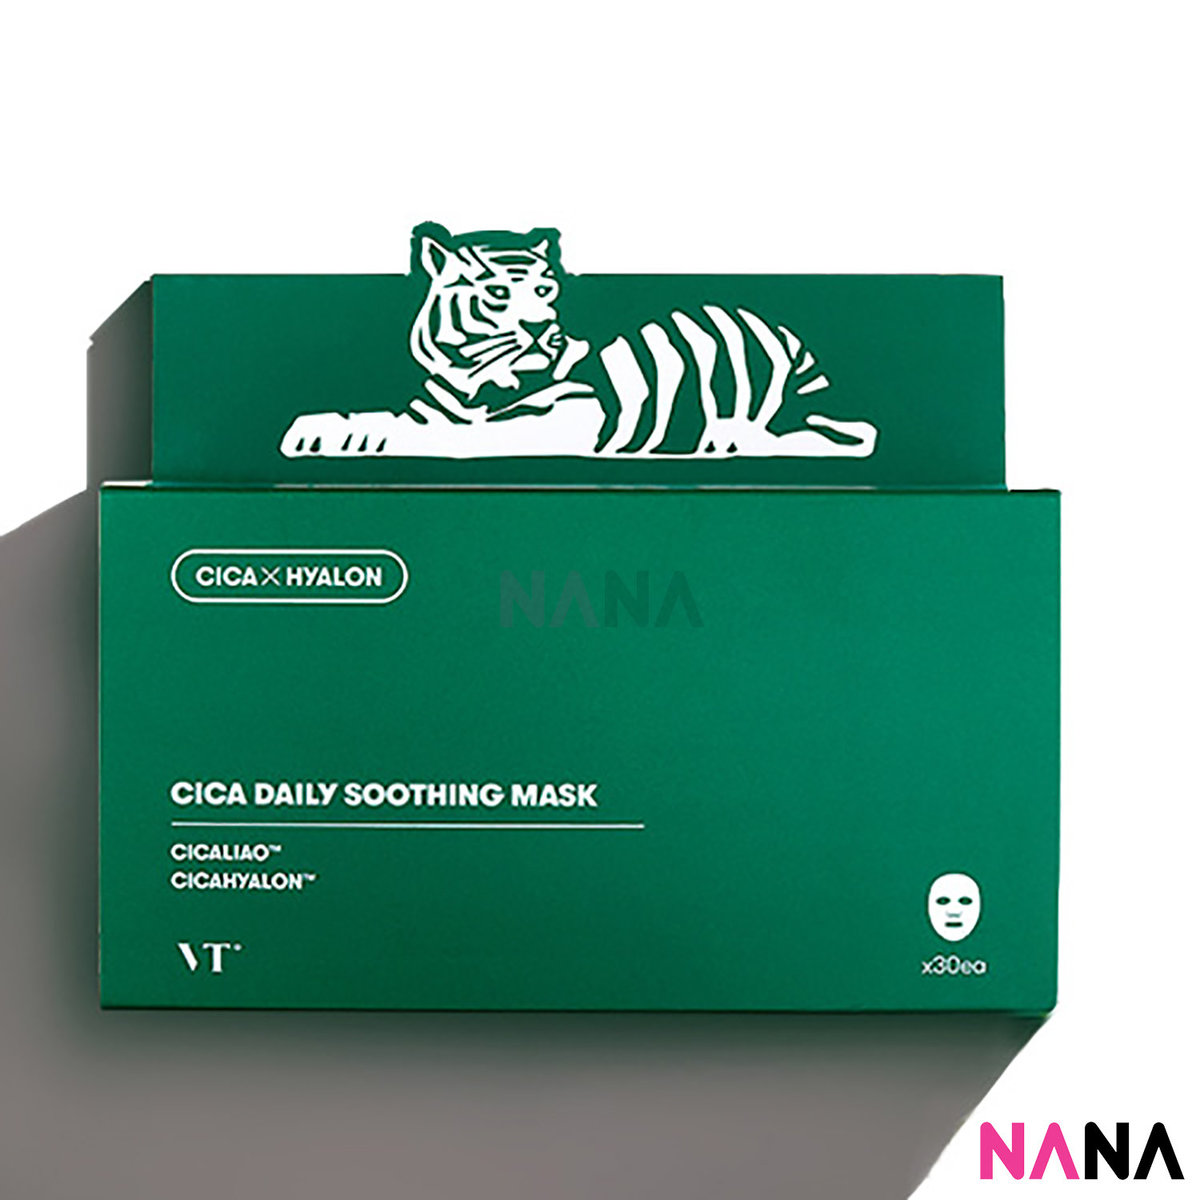 CICA Daily Soothing Mask 30 Sheets/box